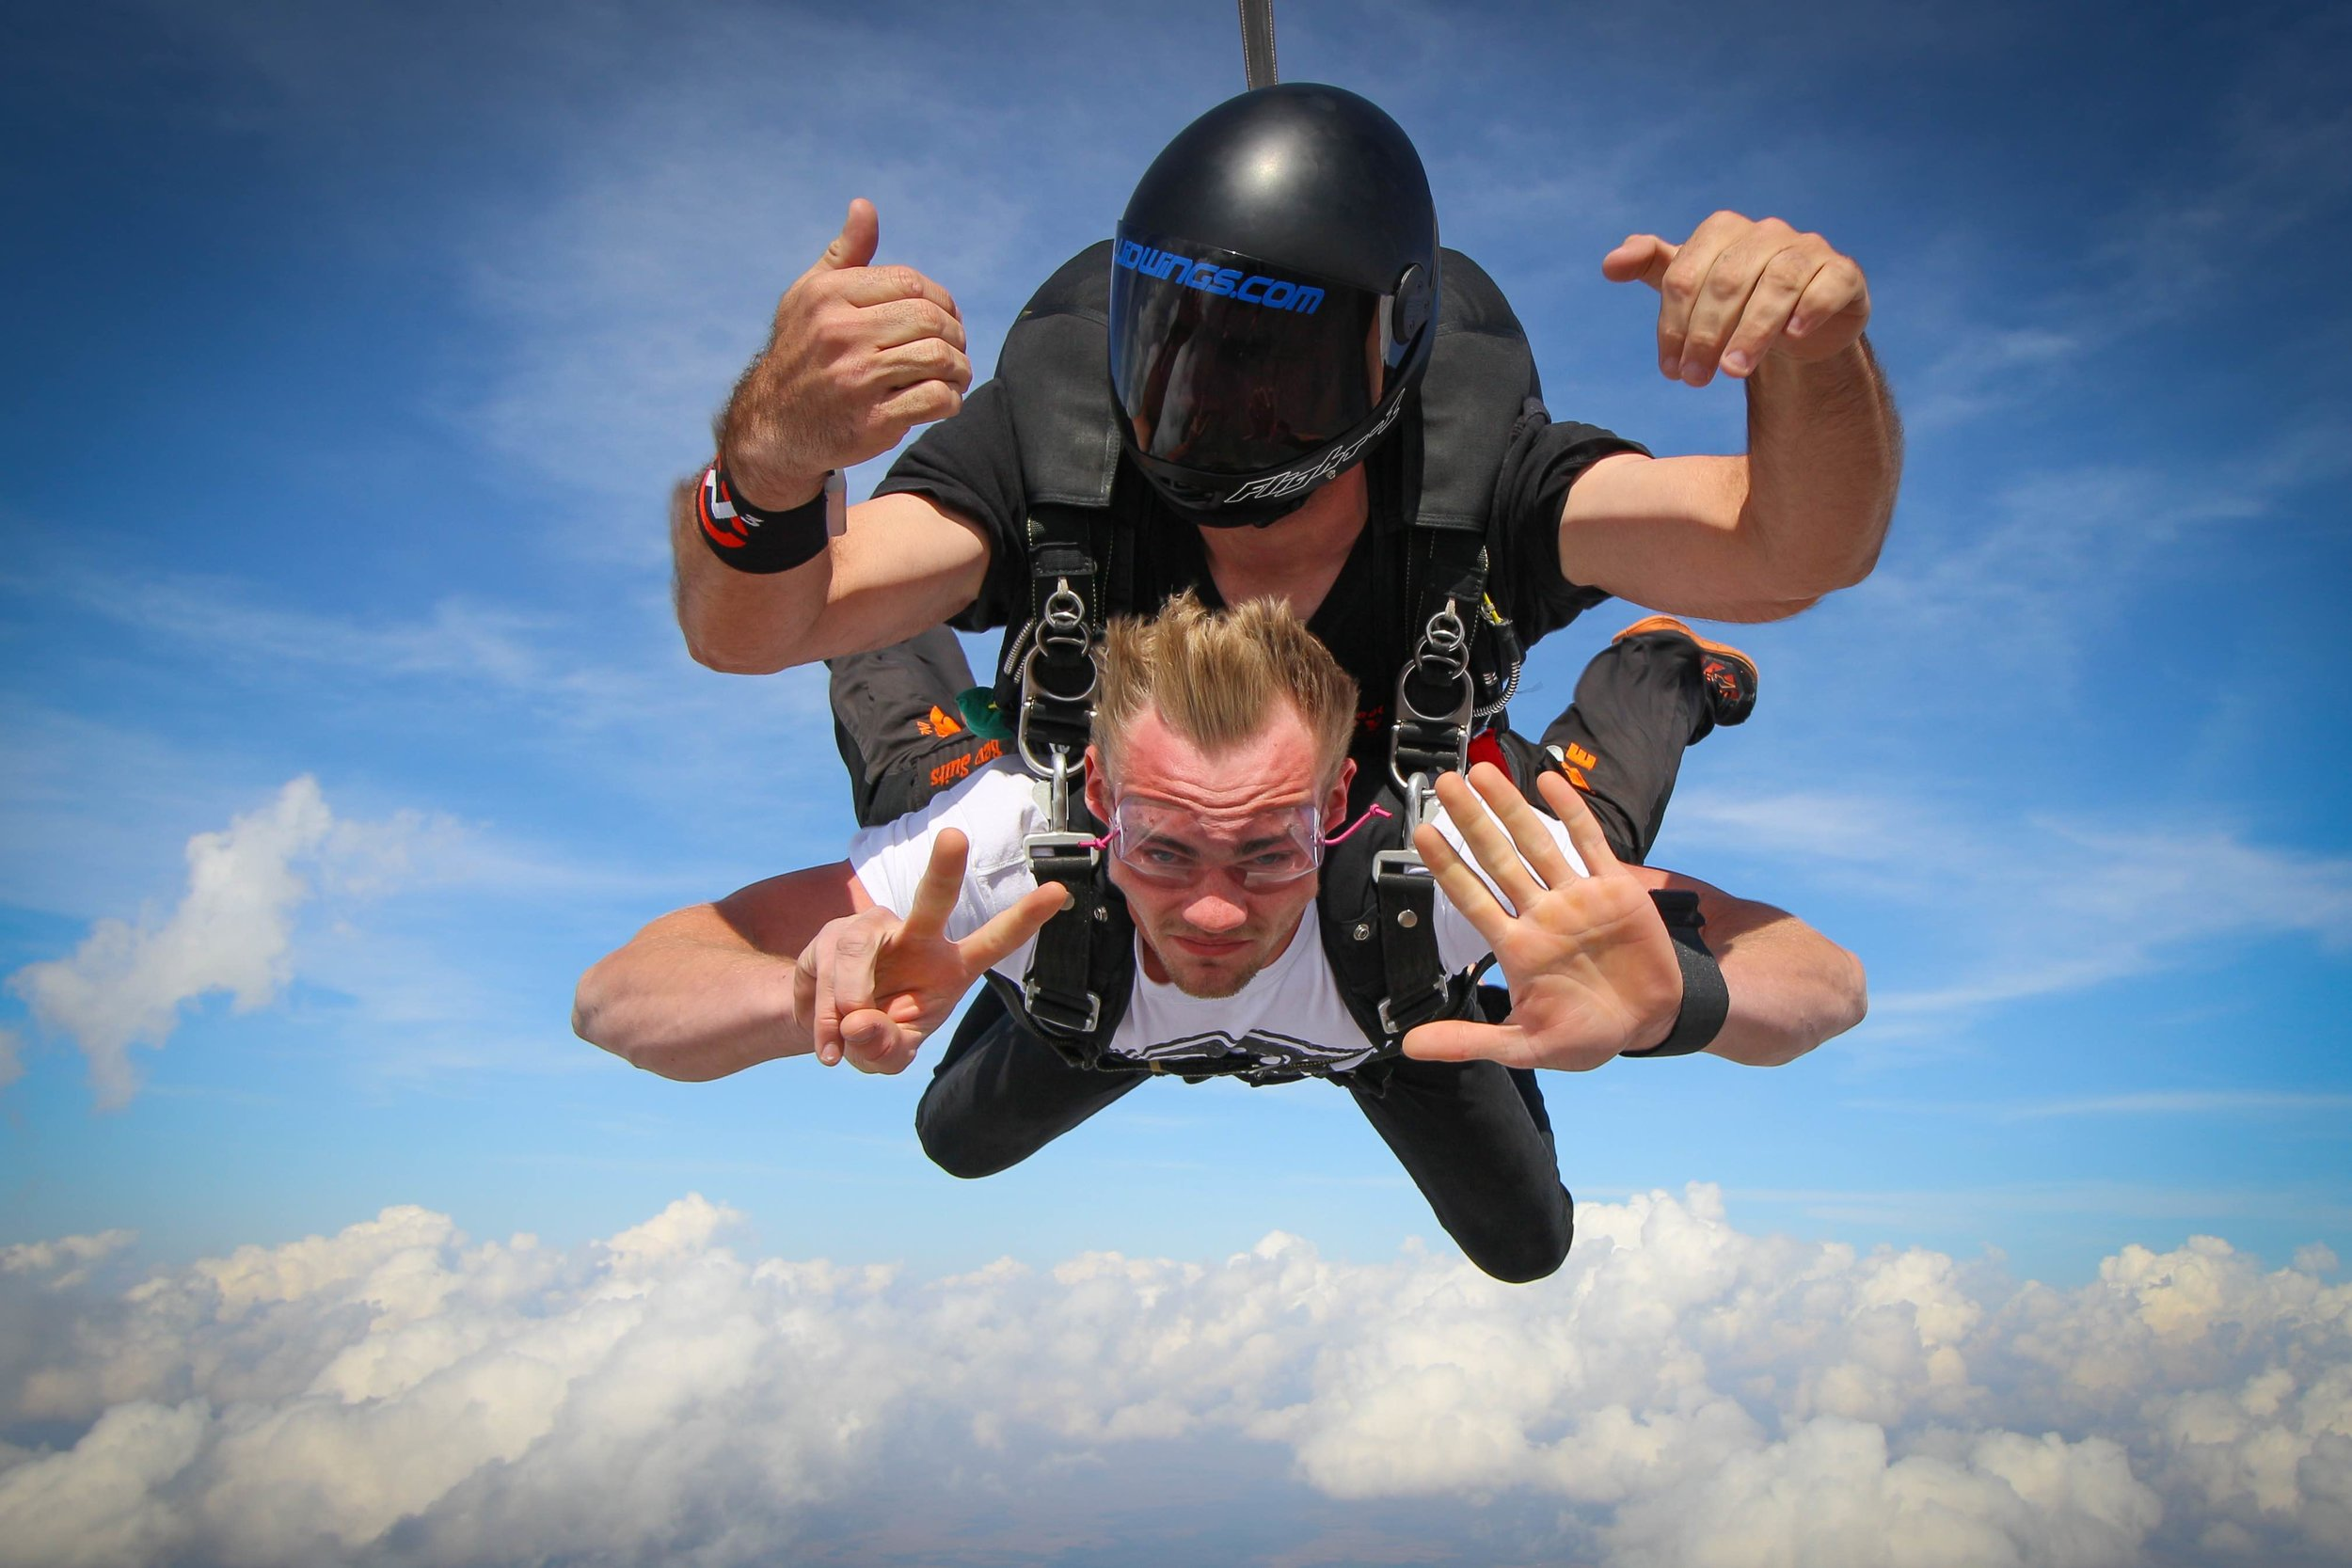 What's your altitude? Your skydive instructor wants to know!